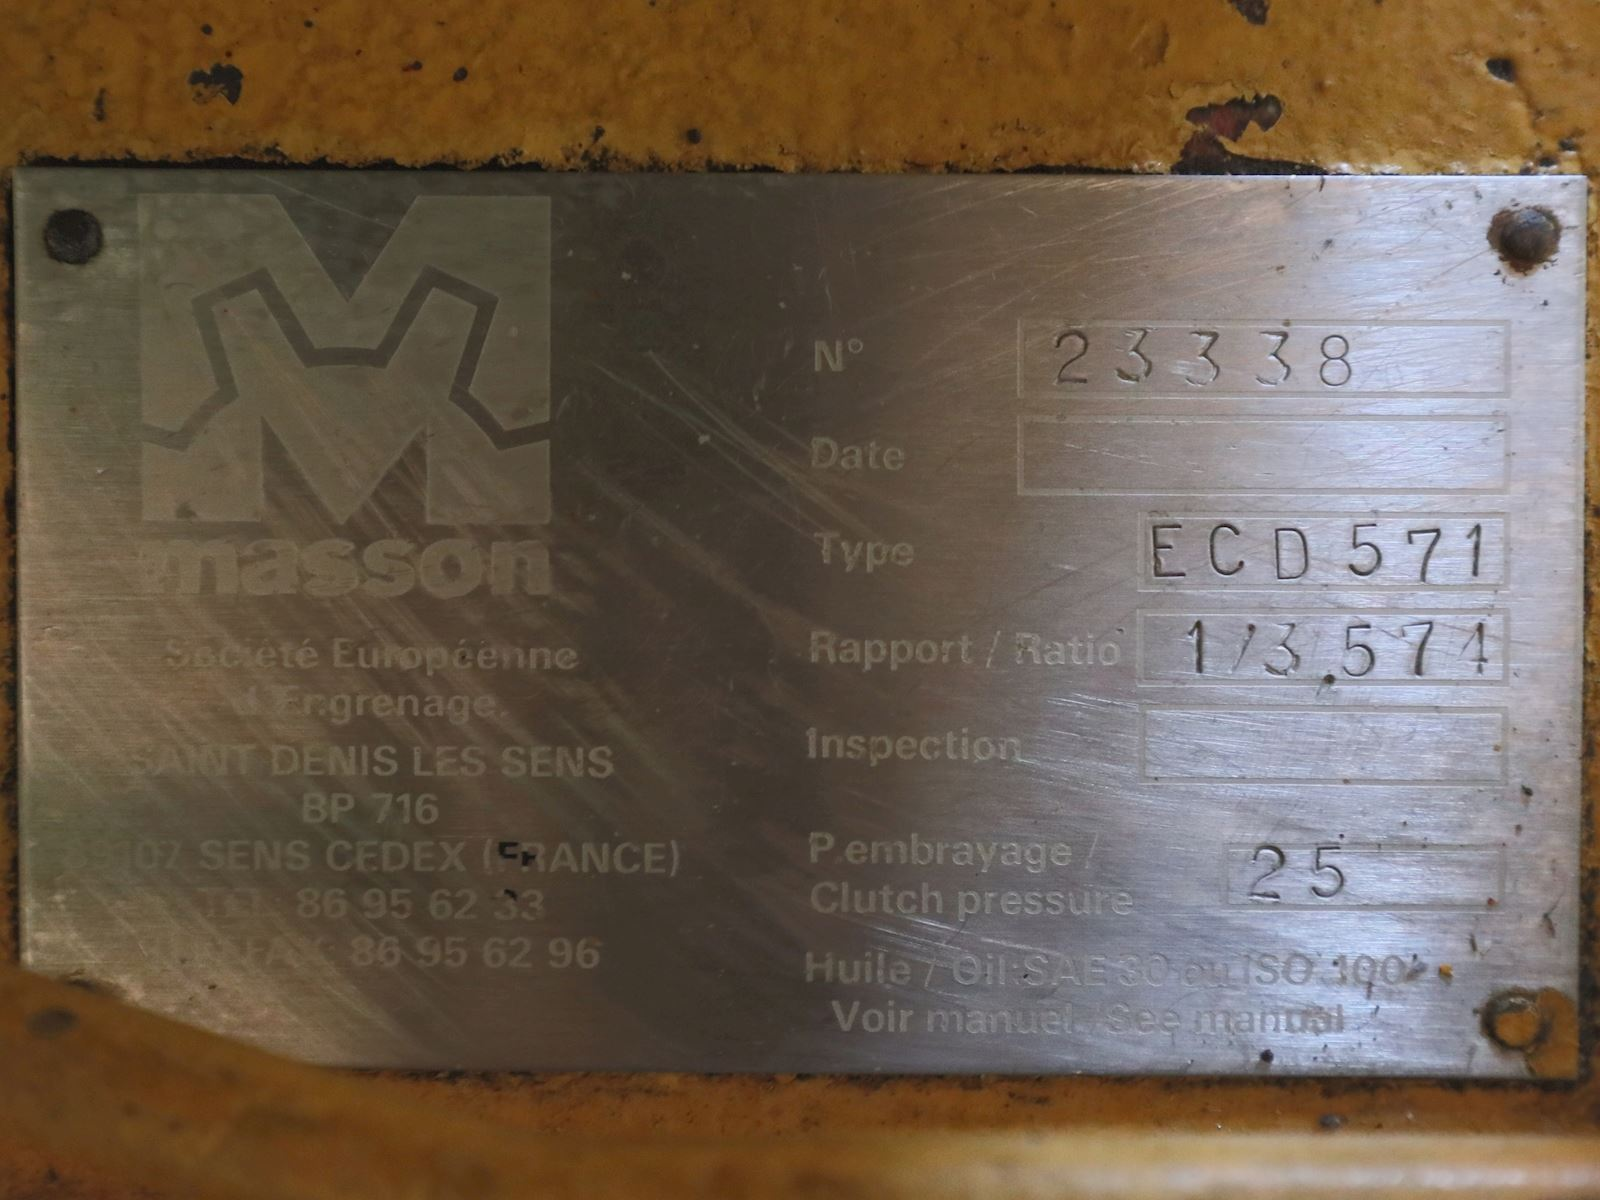 Masson Masson ECD 571, New type designation is MM W5700 NR.